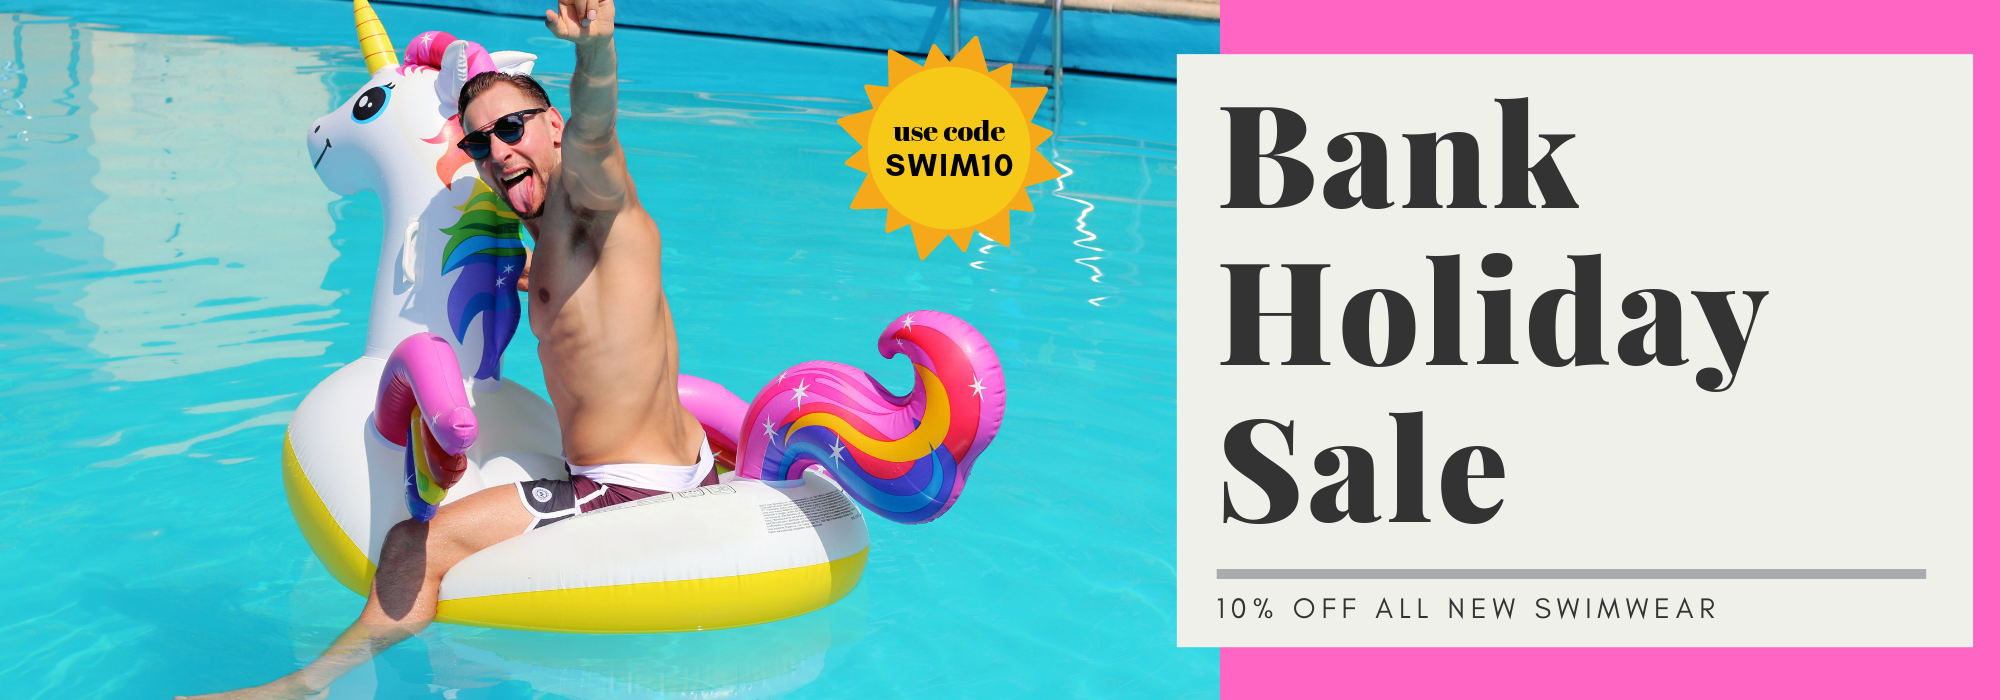 Bank Holiday Sale on Swimwear - Use Code SWIM10